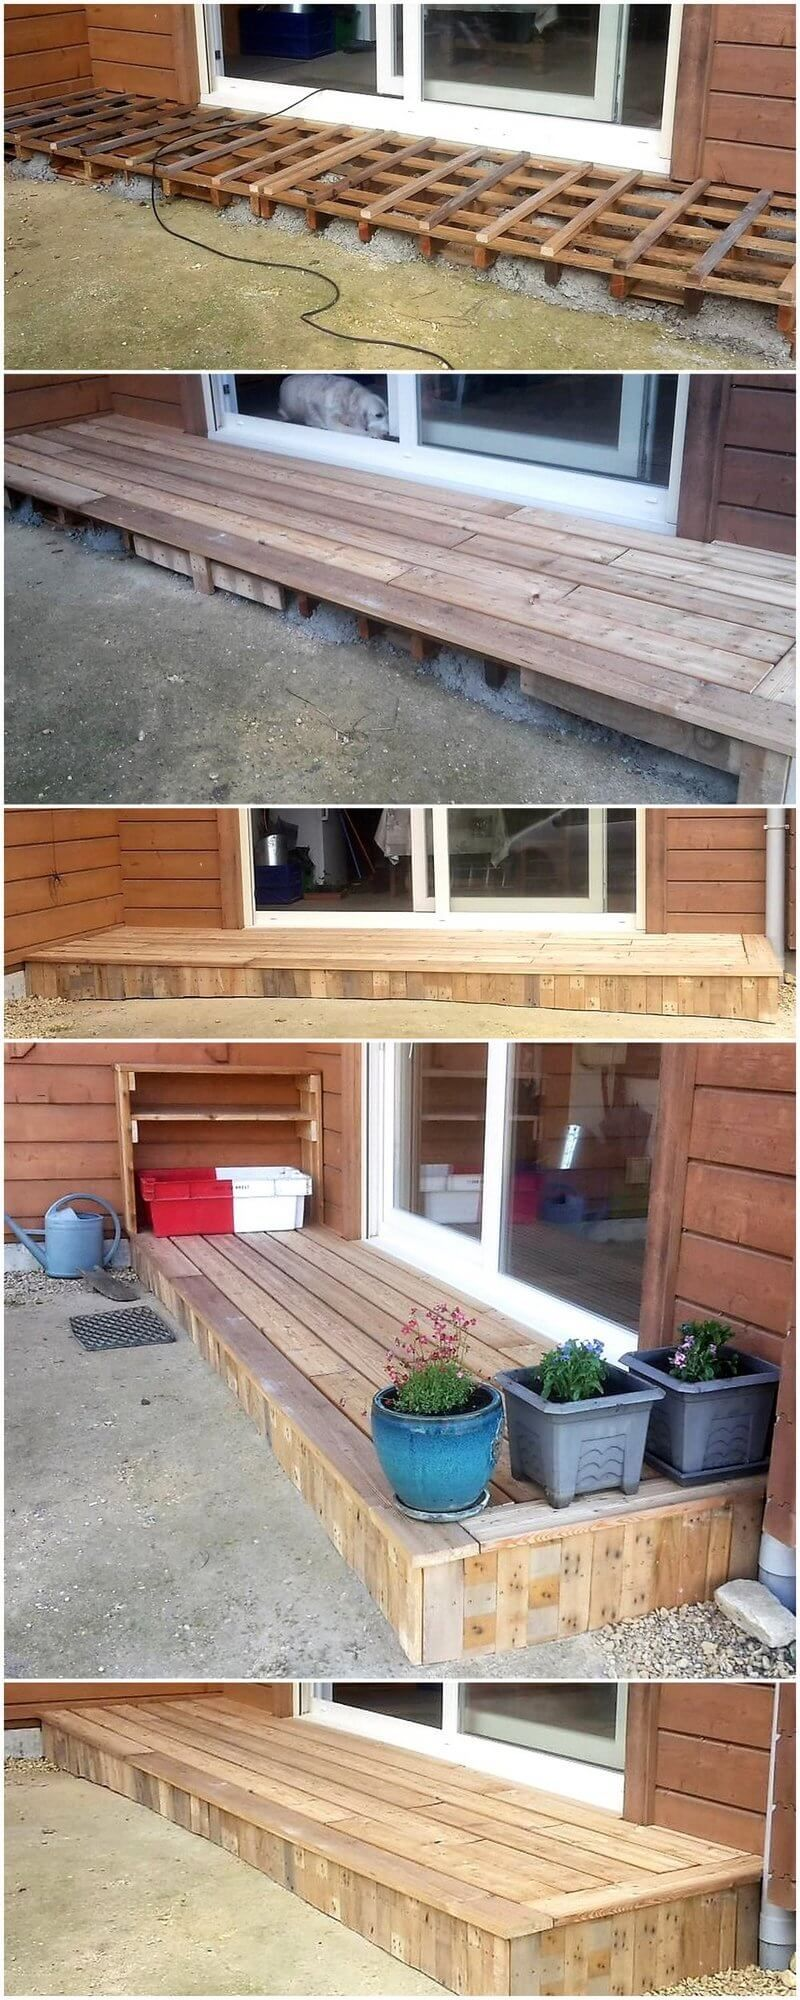 Original DIY Ideas for Wooden Pallets Recycling | Pallet ...